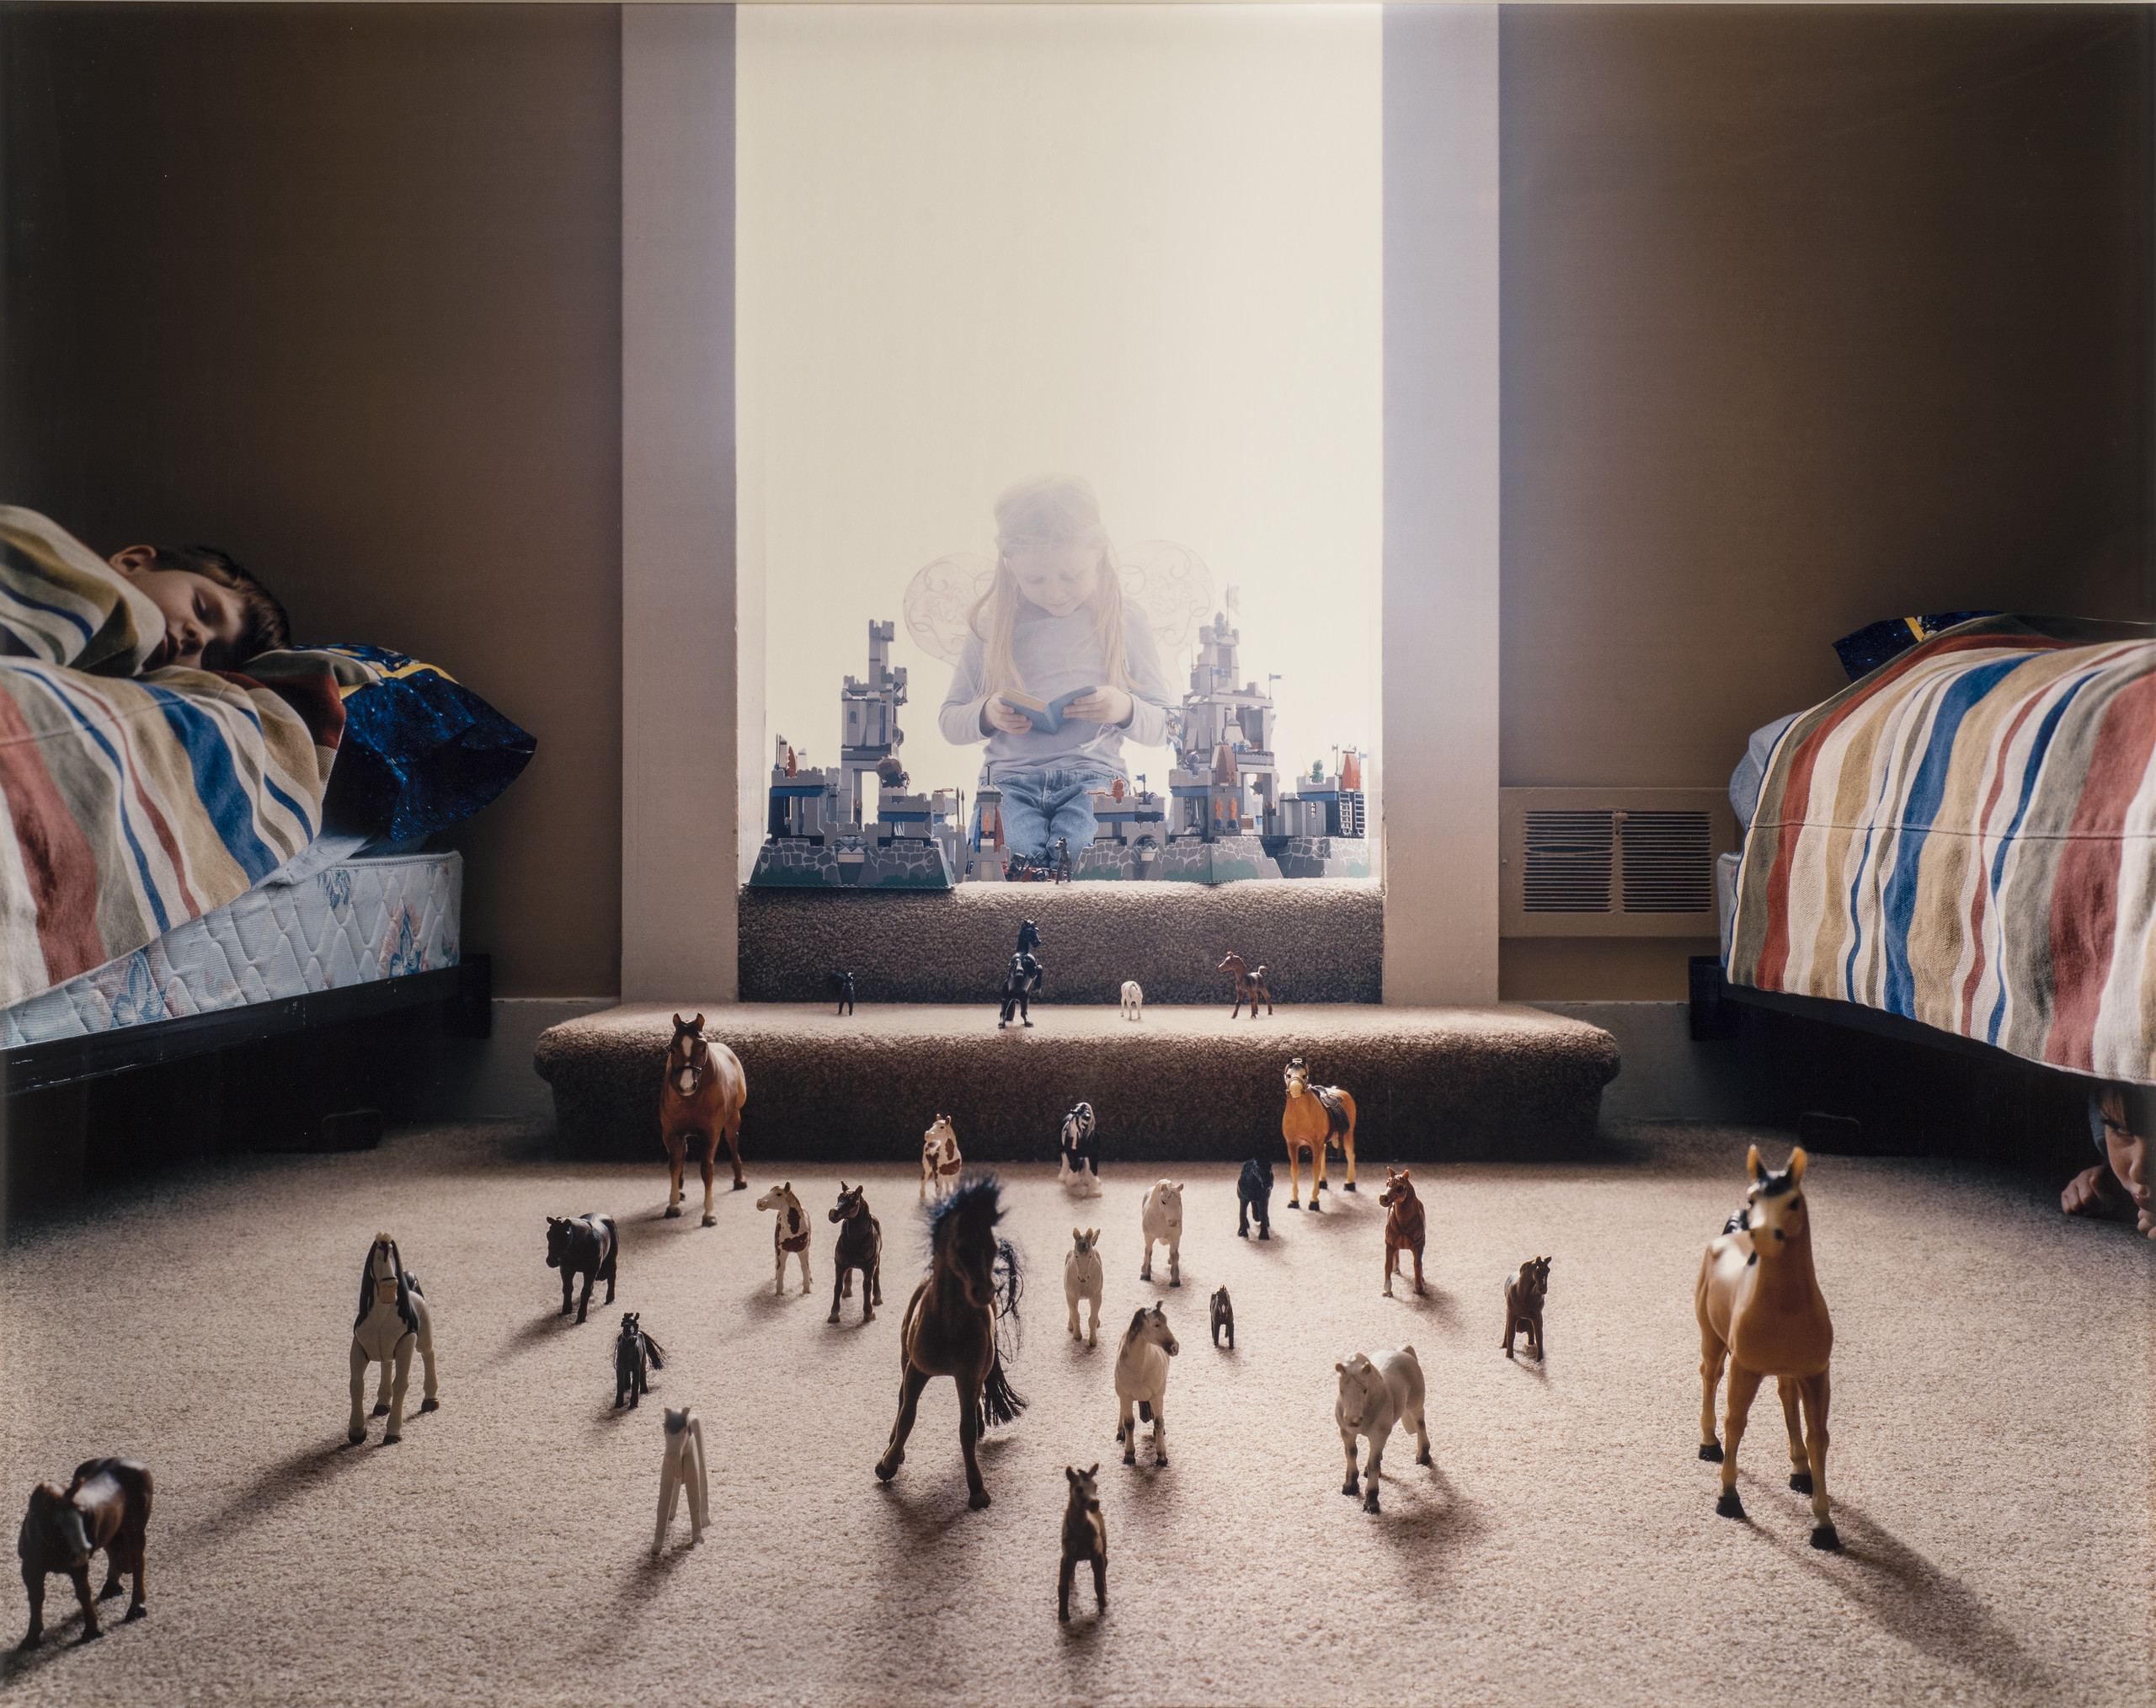 Three light-skinned children: one with long, blonde hair wears fairy wings and kneels, reading a book, behind a toy castle in a doorway full of light; one asleep on a bed on the left; and one under a bed on the right. Between the beds, dozens of toy horses stampede at the viewer.